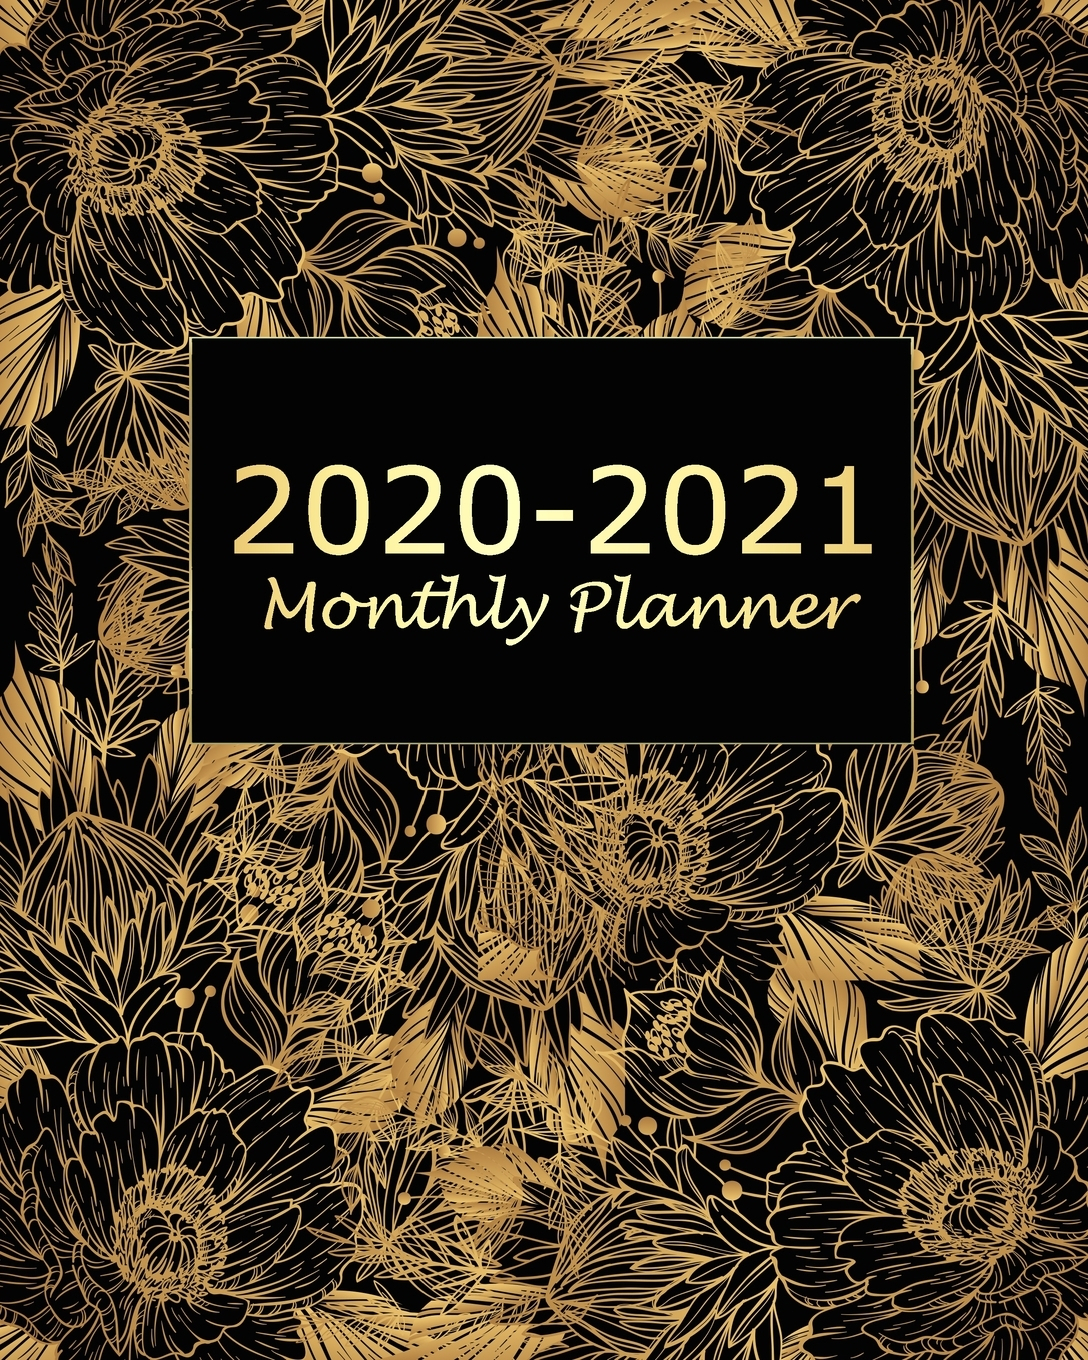 2020-2021 Monthly Planner : Yellow Floral 2 Year Monthly Planner Calendar  Schedule Organizer January 2020 To December 2021 (24 Months) With Holidays with regard to 2021-2021 2 Year Planner Llama Monthly